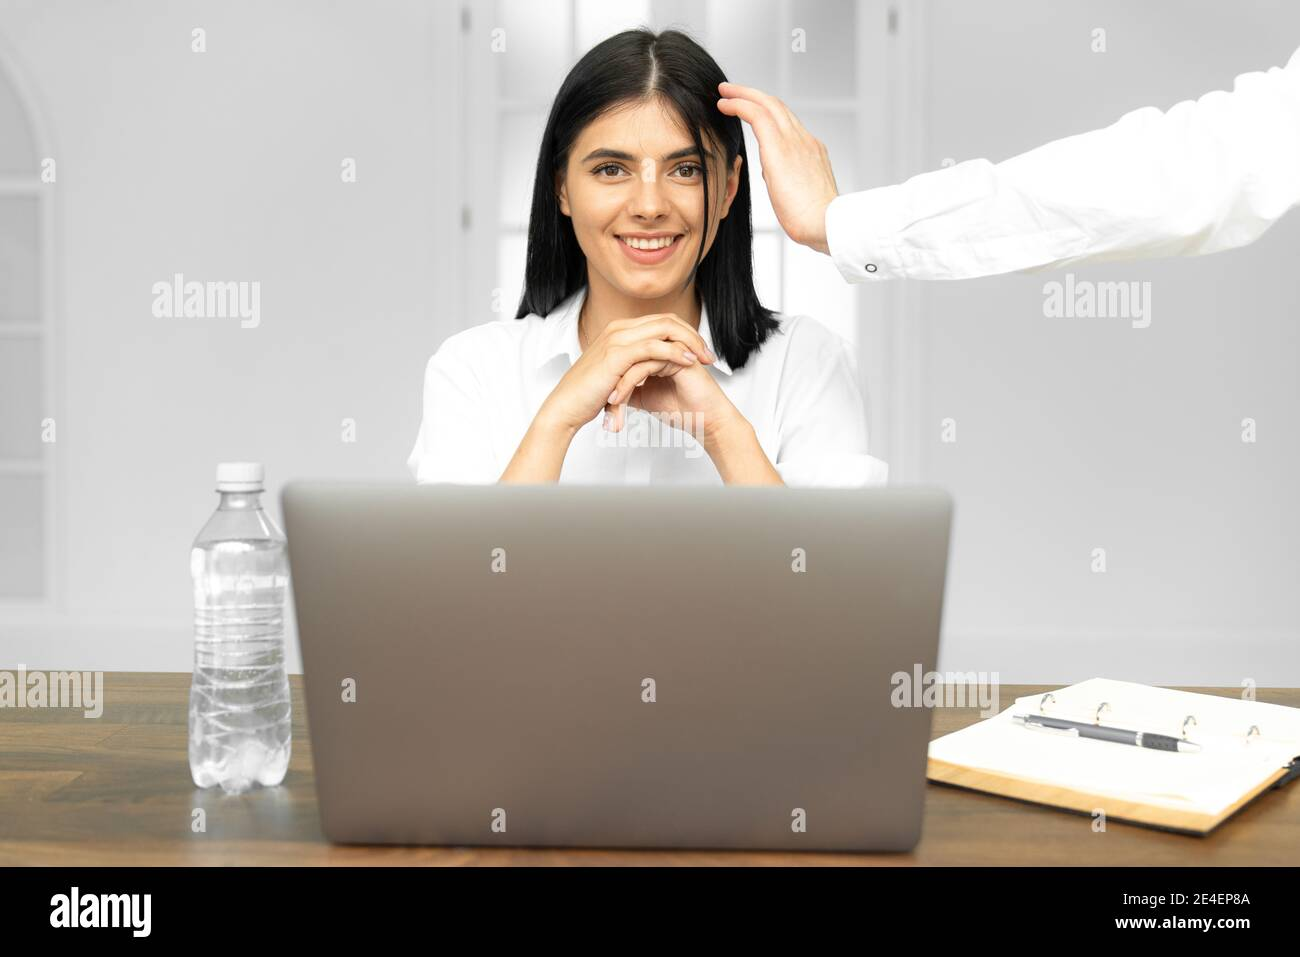 Head shot pleasant happy young woman freelancer working on computer at home. Attractive businesswoman studying online, using laptop software, web surf Stock Photo